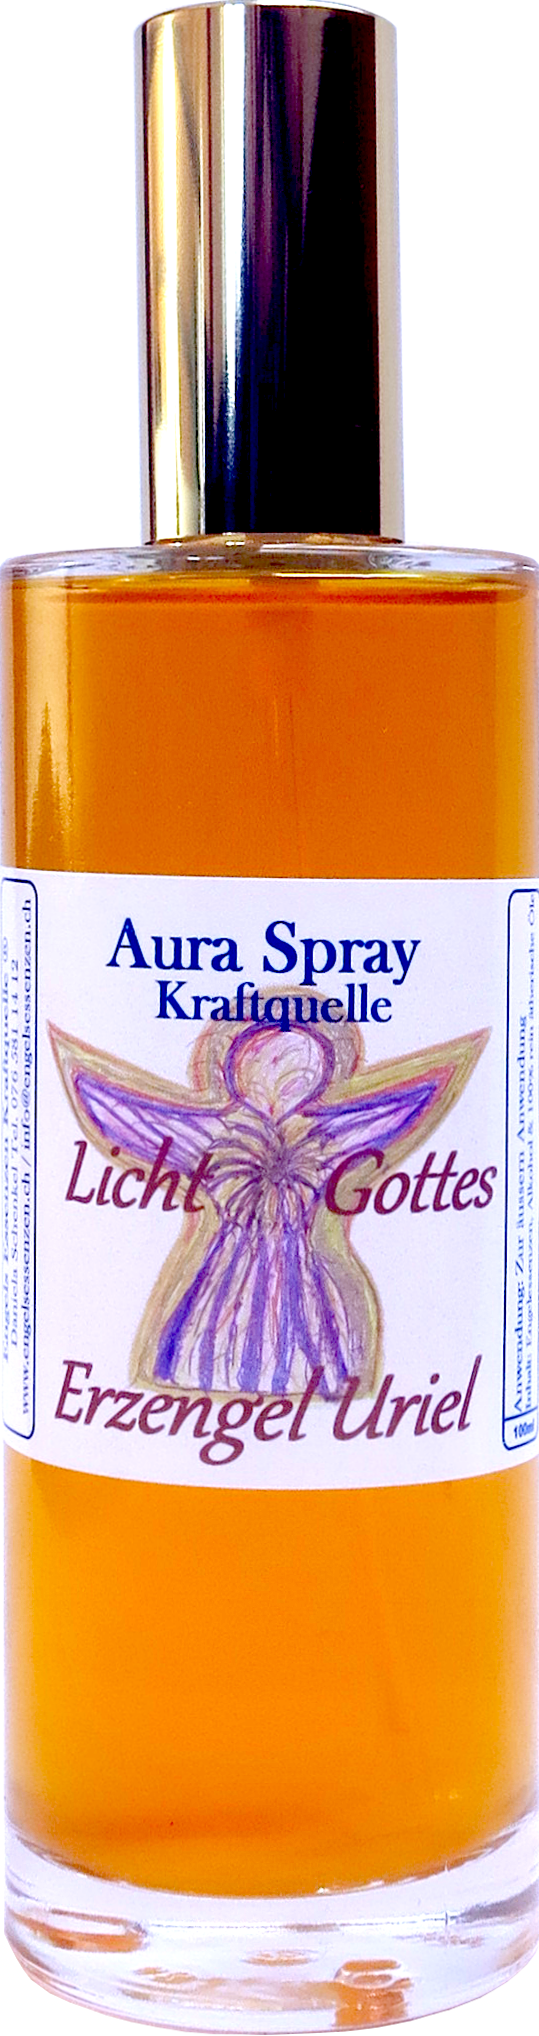 Aura Spray Erzengel Uriel